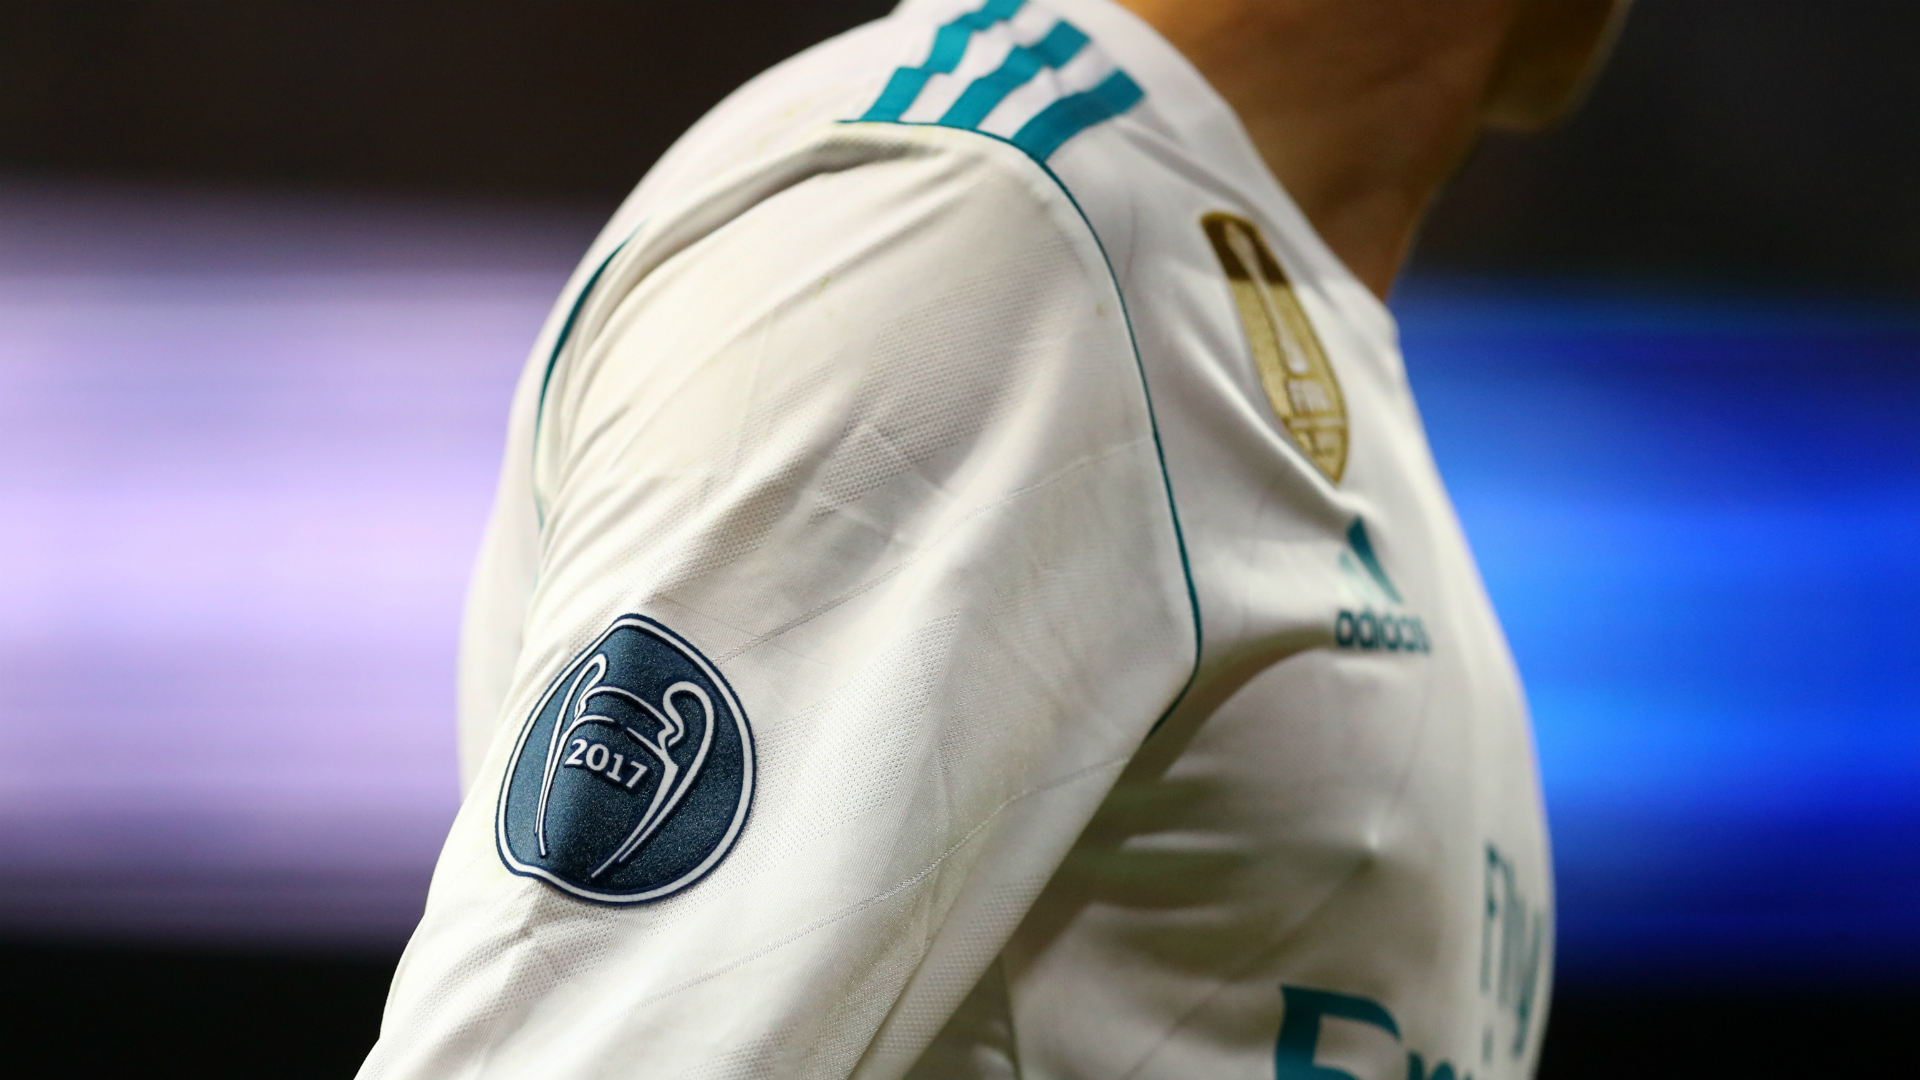 Real Madrid to have women's team in 2019-20